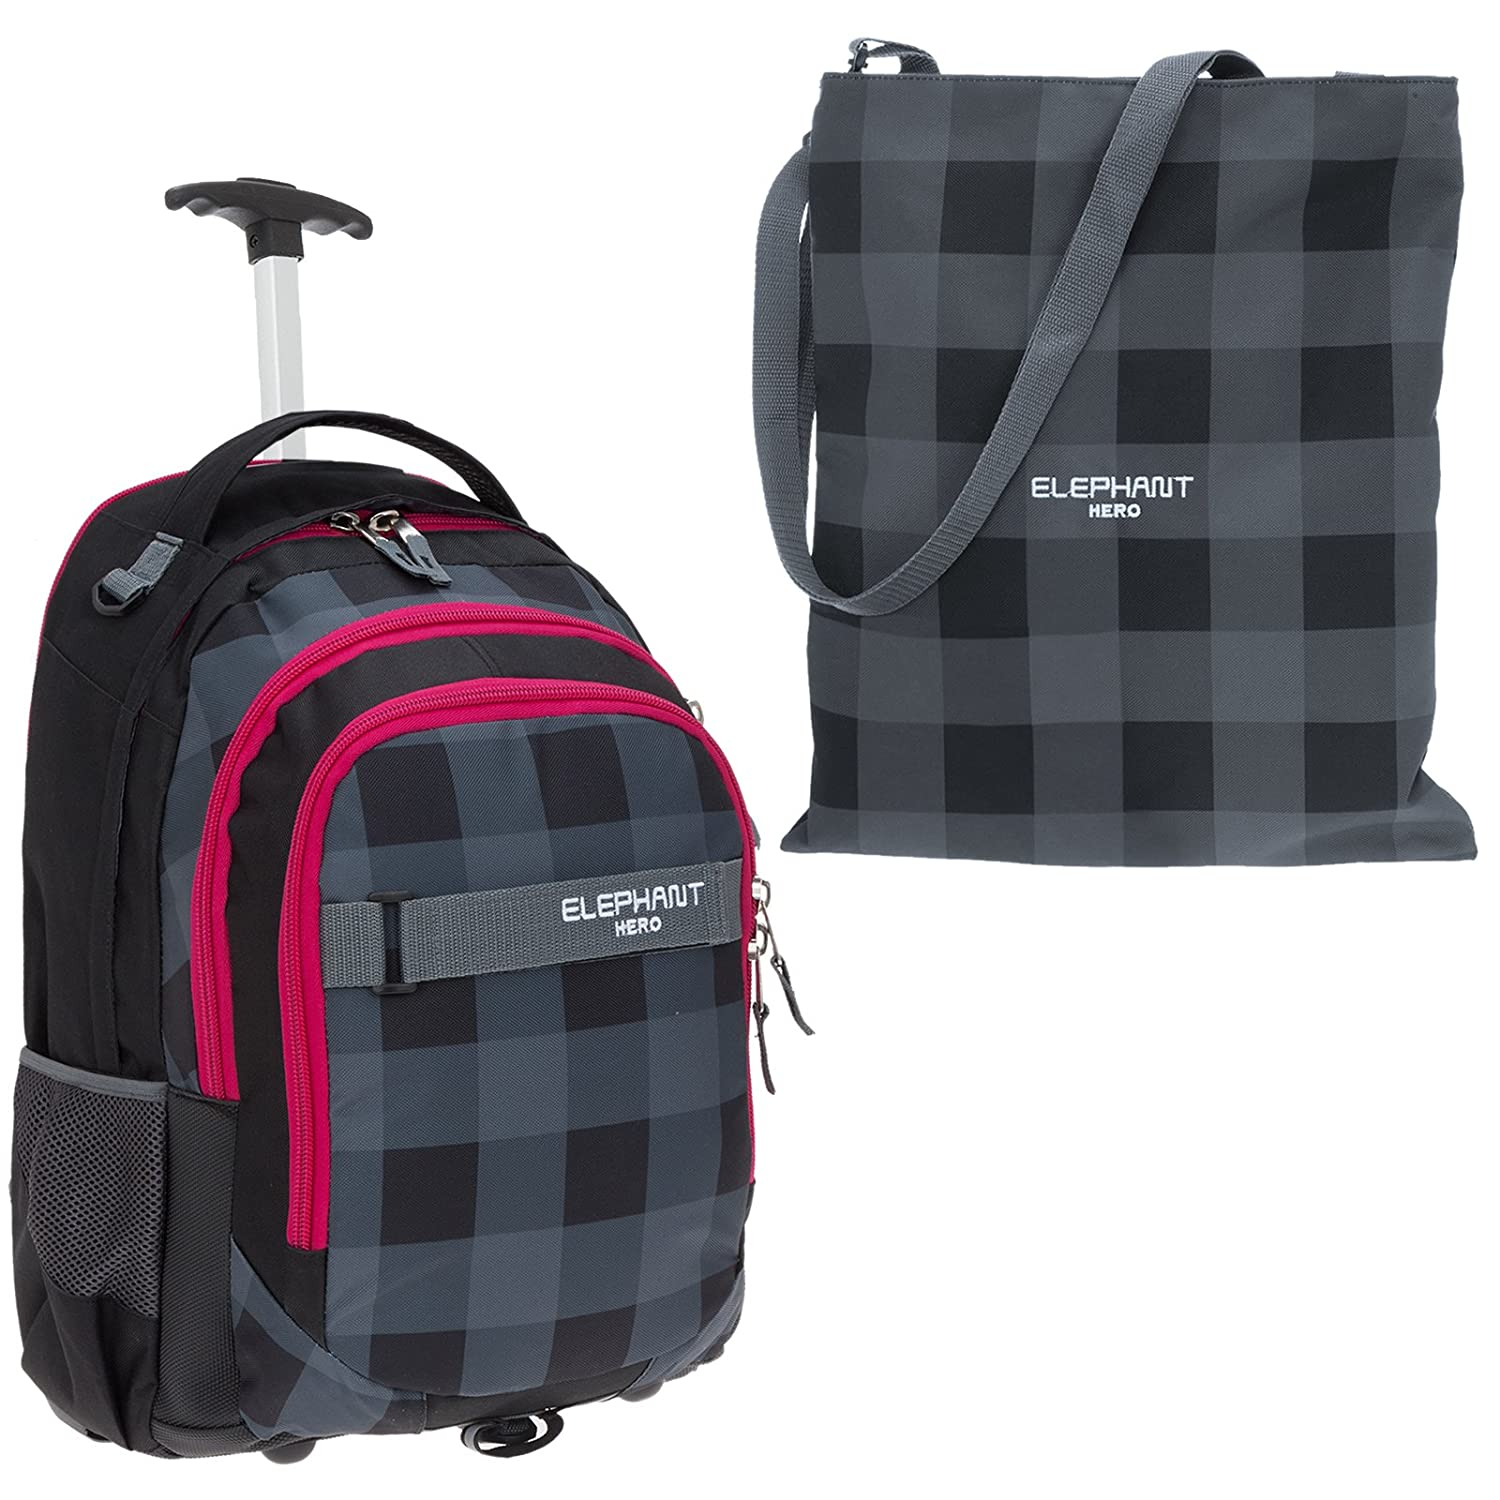 d66e969c5f823 2 Teile SET  ELEPHANT Trolley HERO SIGNATURE Schultrolley 12680 +  Turnbeutel ATTACH Bag (Butterfly